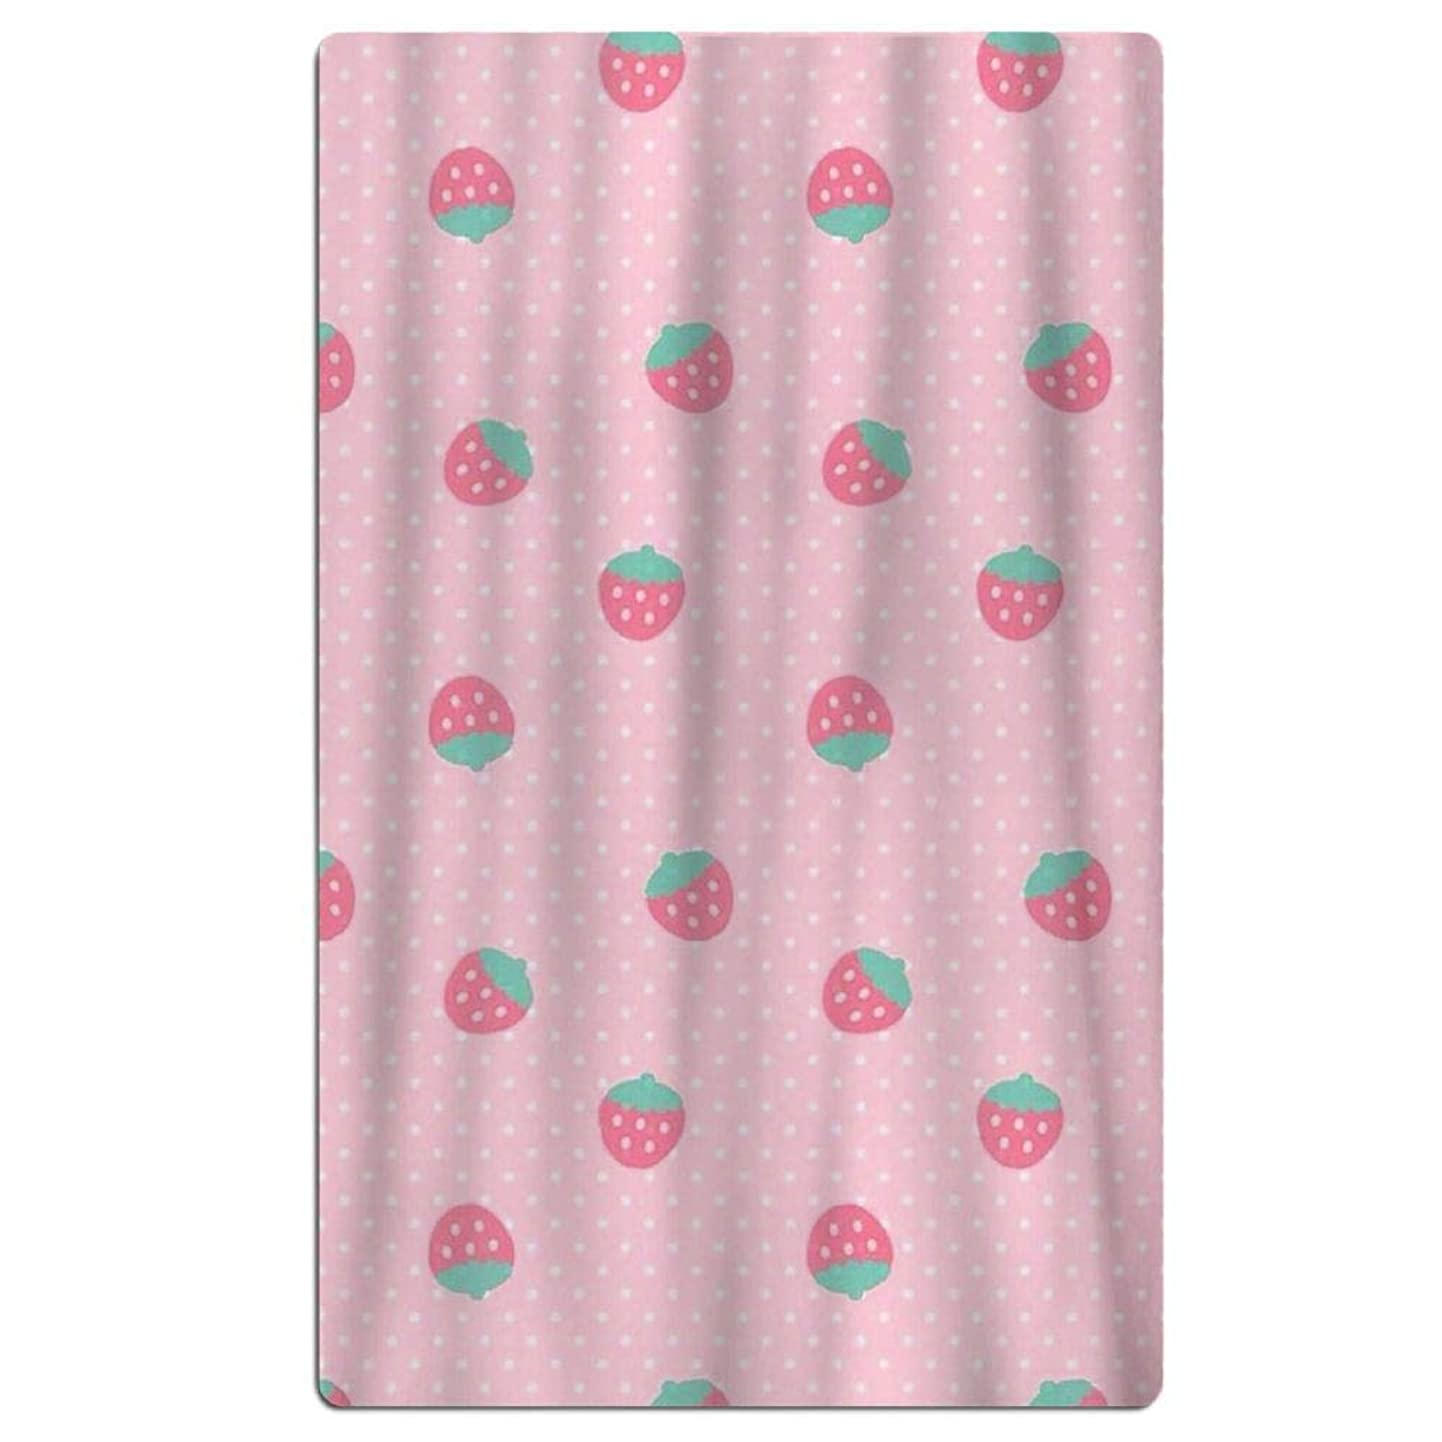 Bath Towel Cute Strawberry Pink Background Creative Design Soft Beach Towel 31